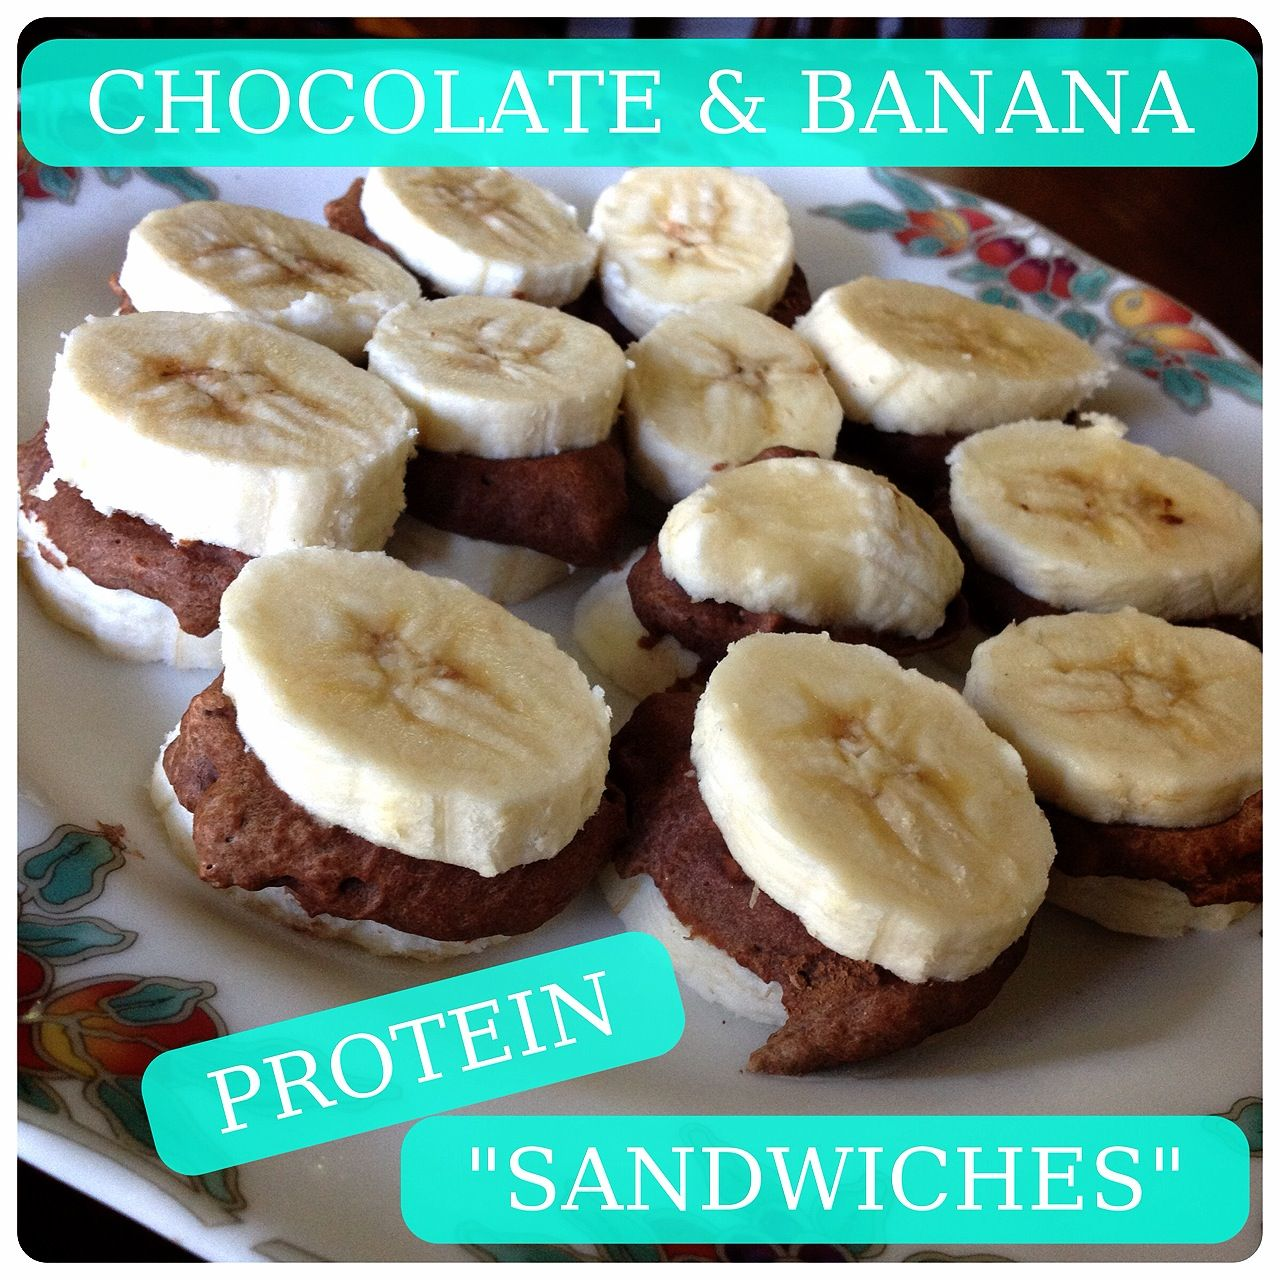 Maden In Küche Gesundheit Healthy Chocolate And Banana Protein Sandwiches By